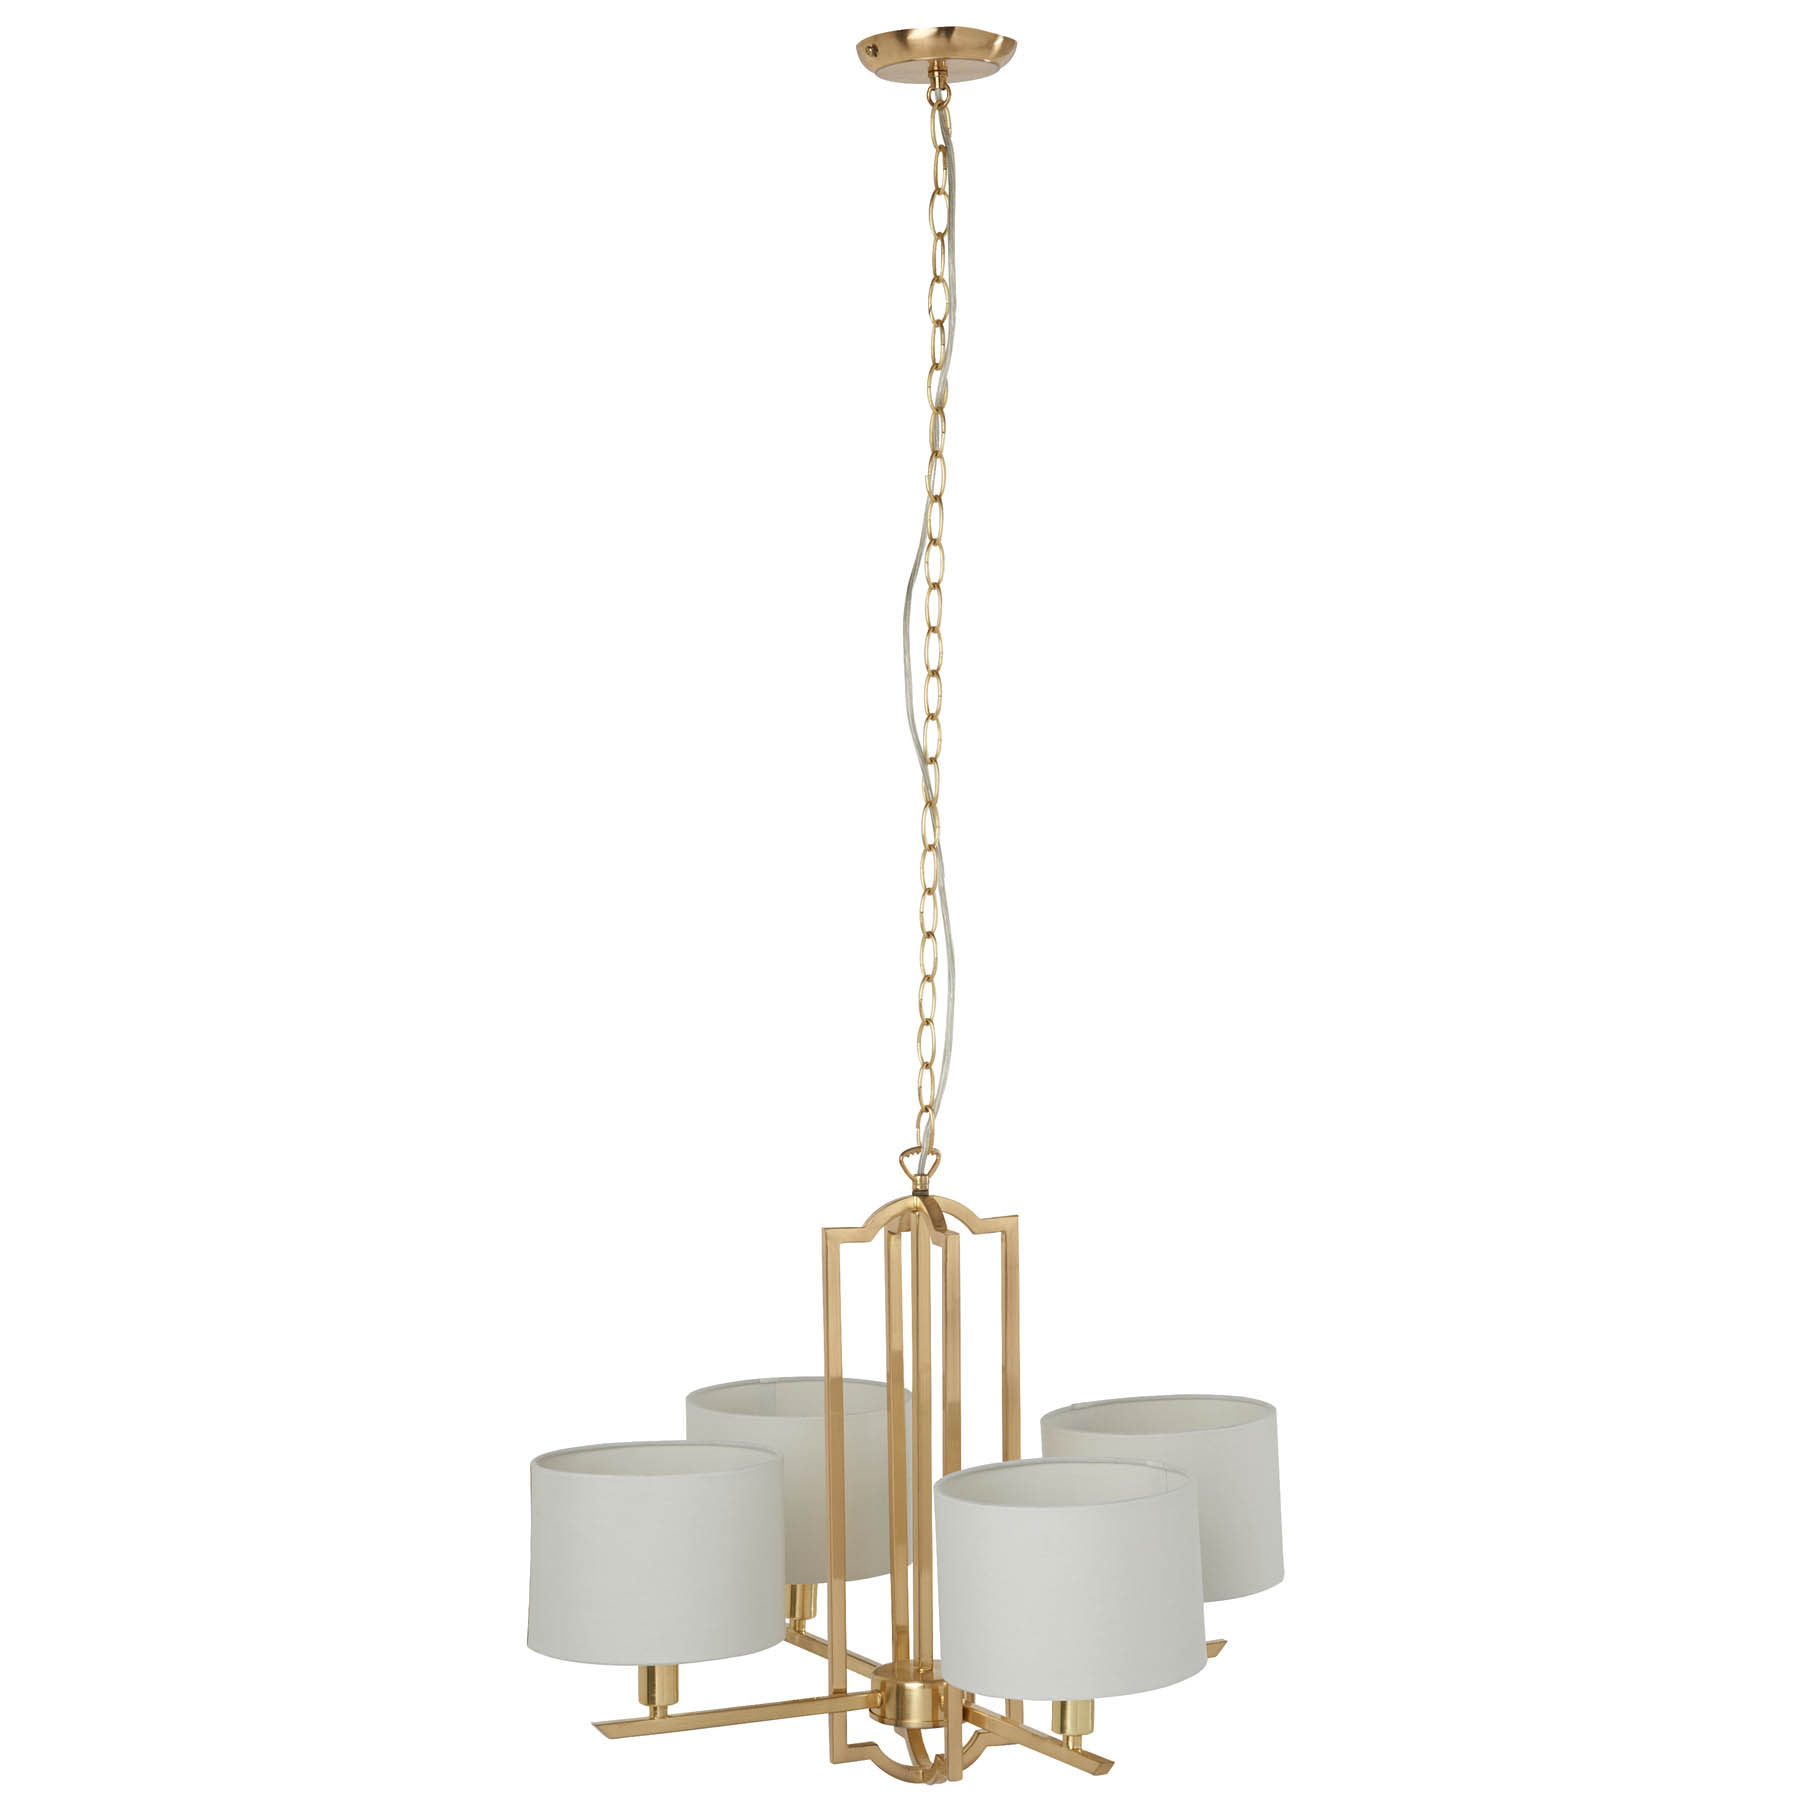 Stella 4 light chandelier £125 Marks and Spencer SS17